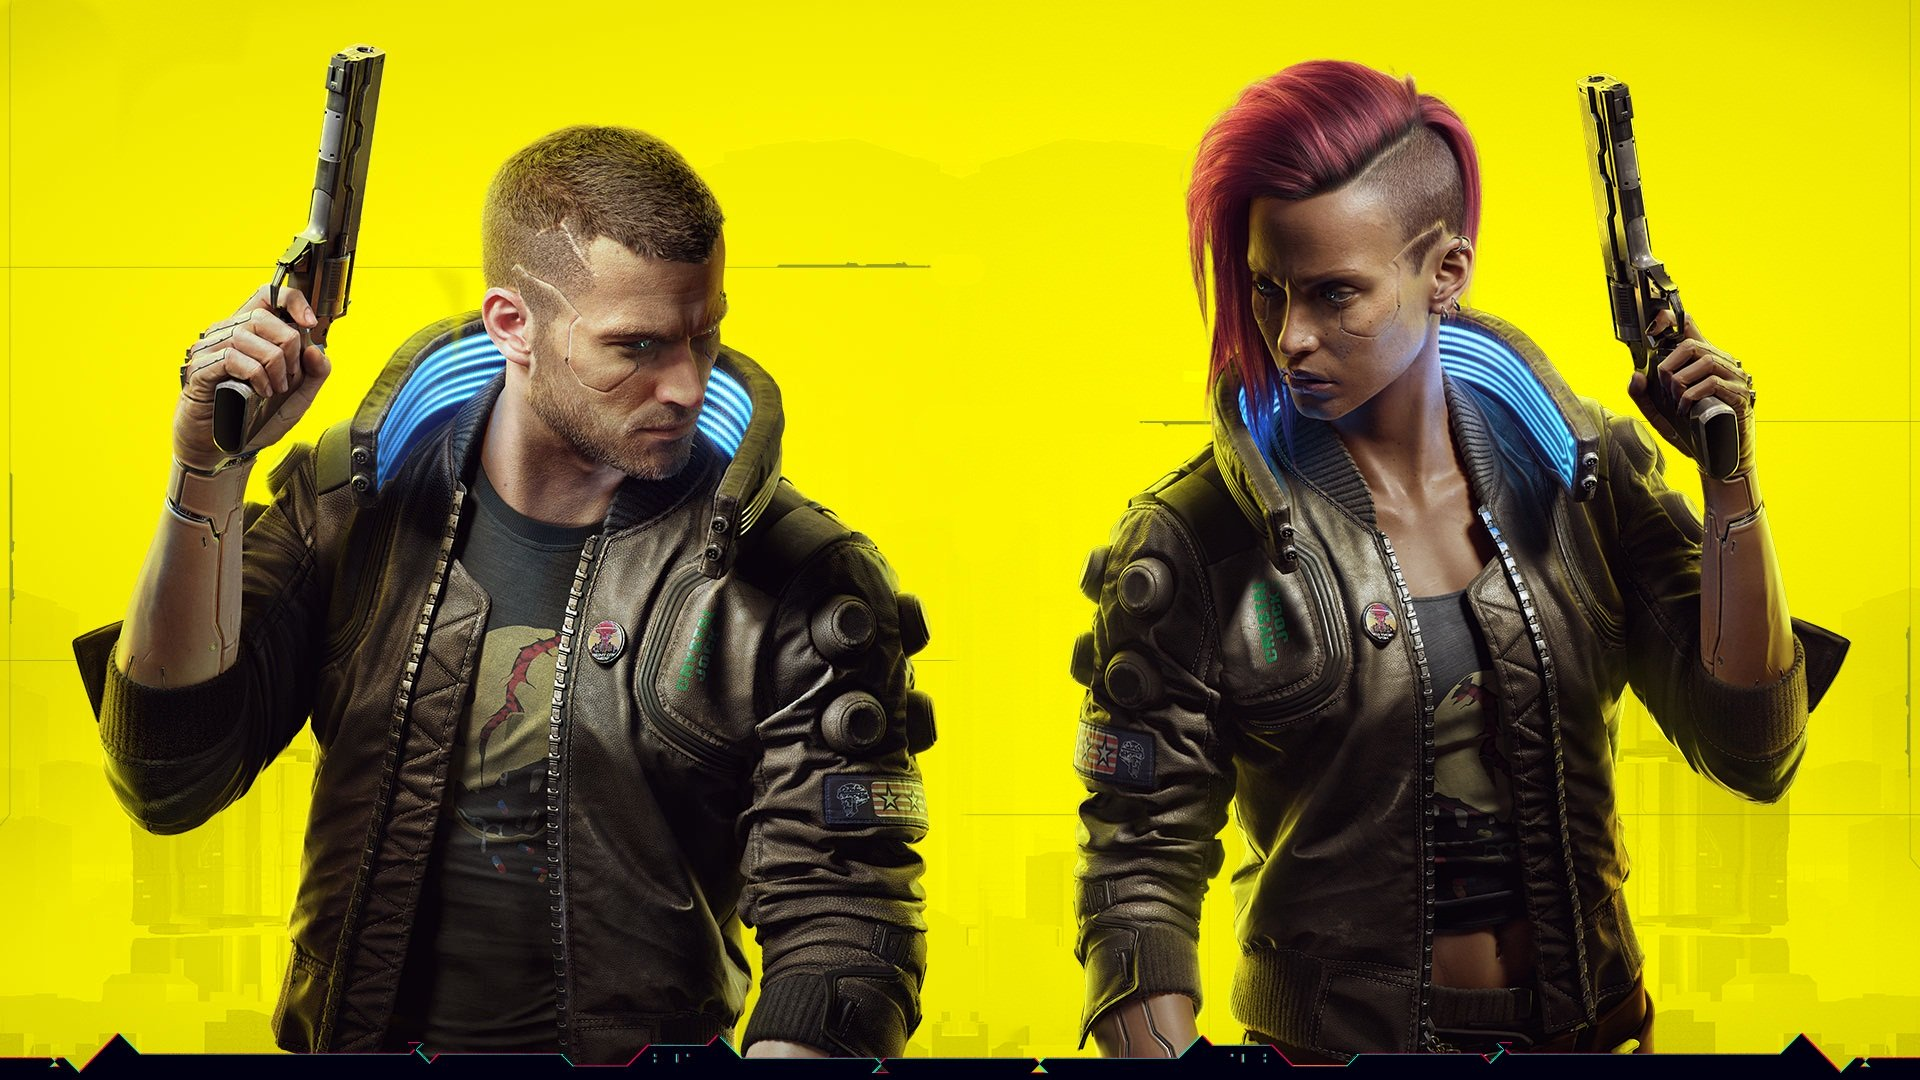 Update: Cyberpunk 2077 Adds New Perks, Playstyles And The Ability To Change Your Character's Clothing In Preview